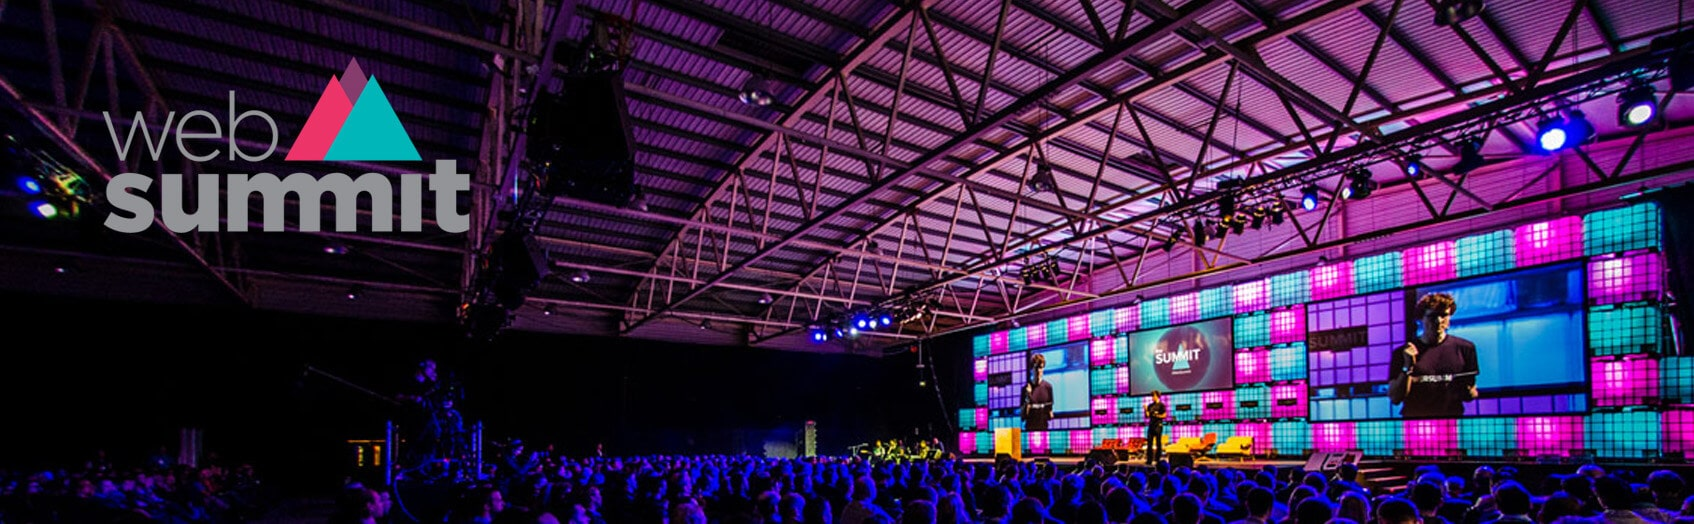 Web Summit in Top tech events 2016, Q4 - guide by Redwerk